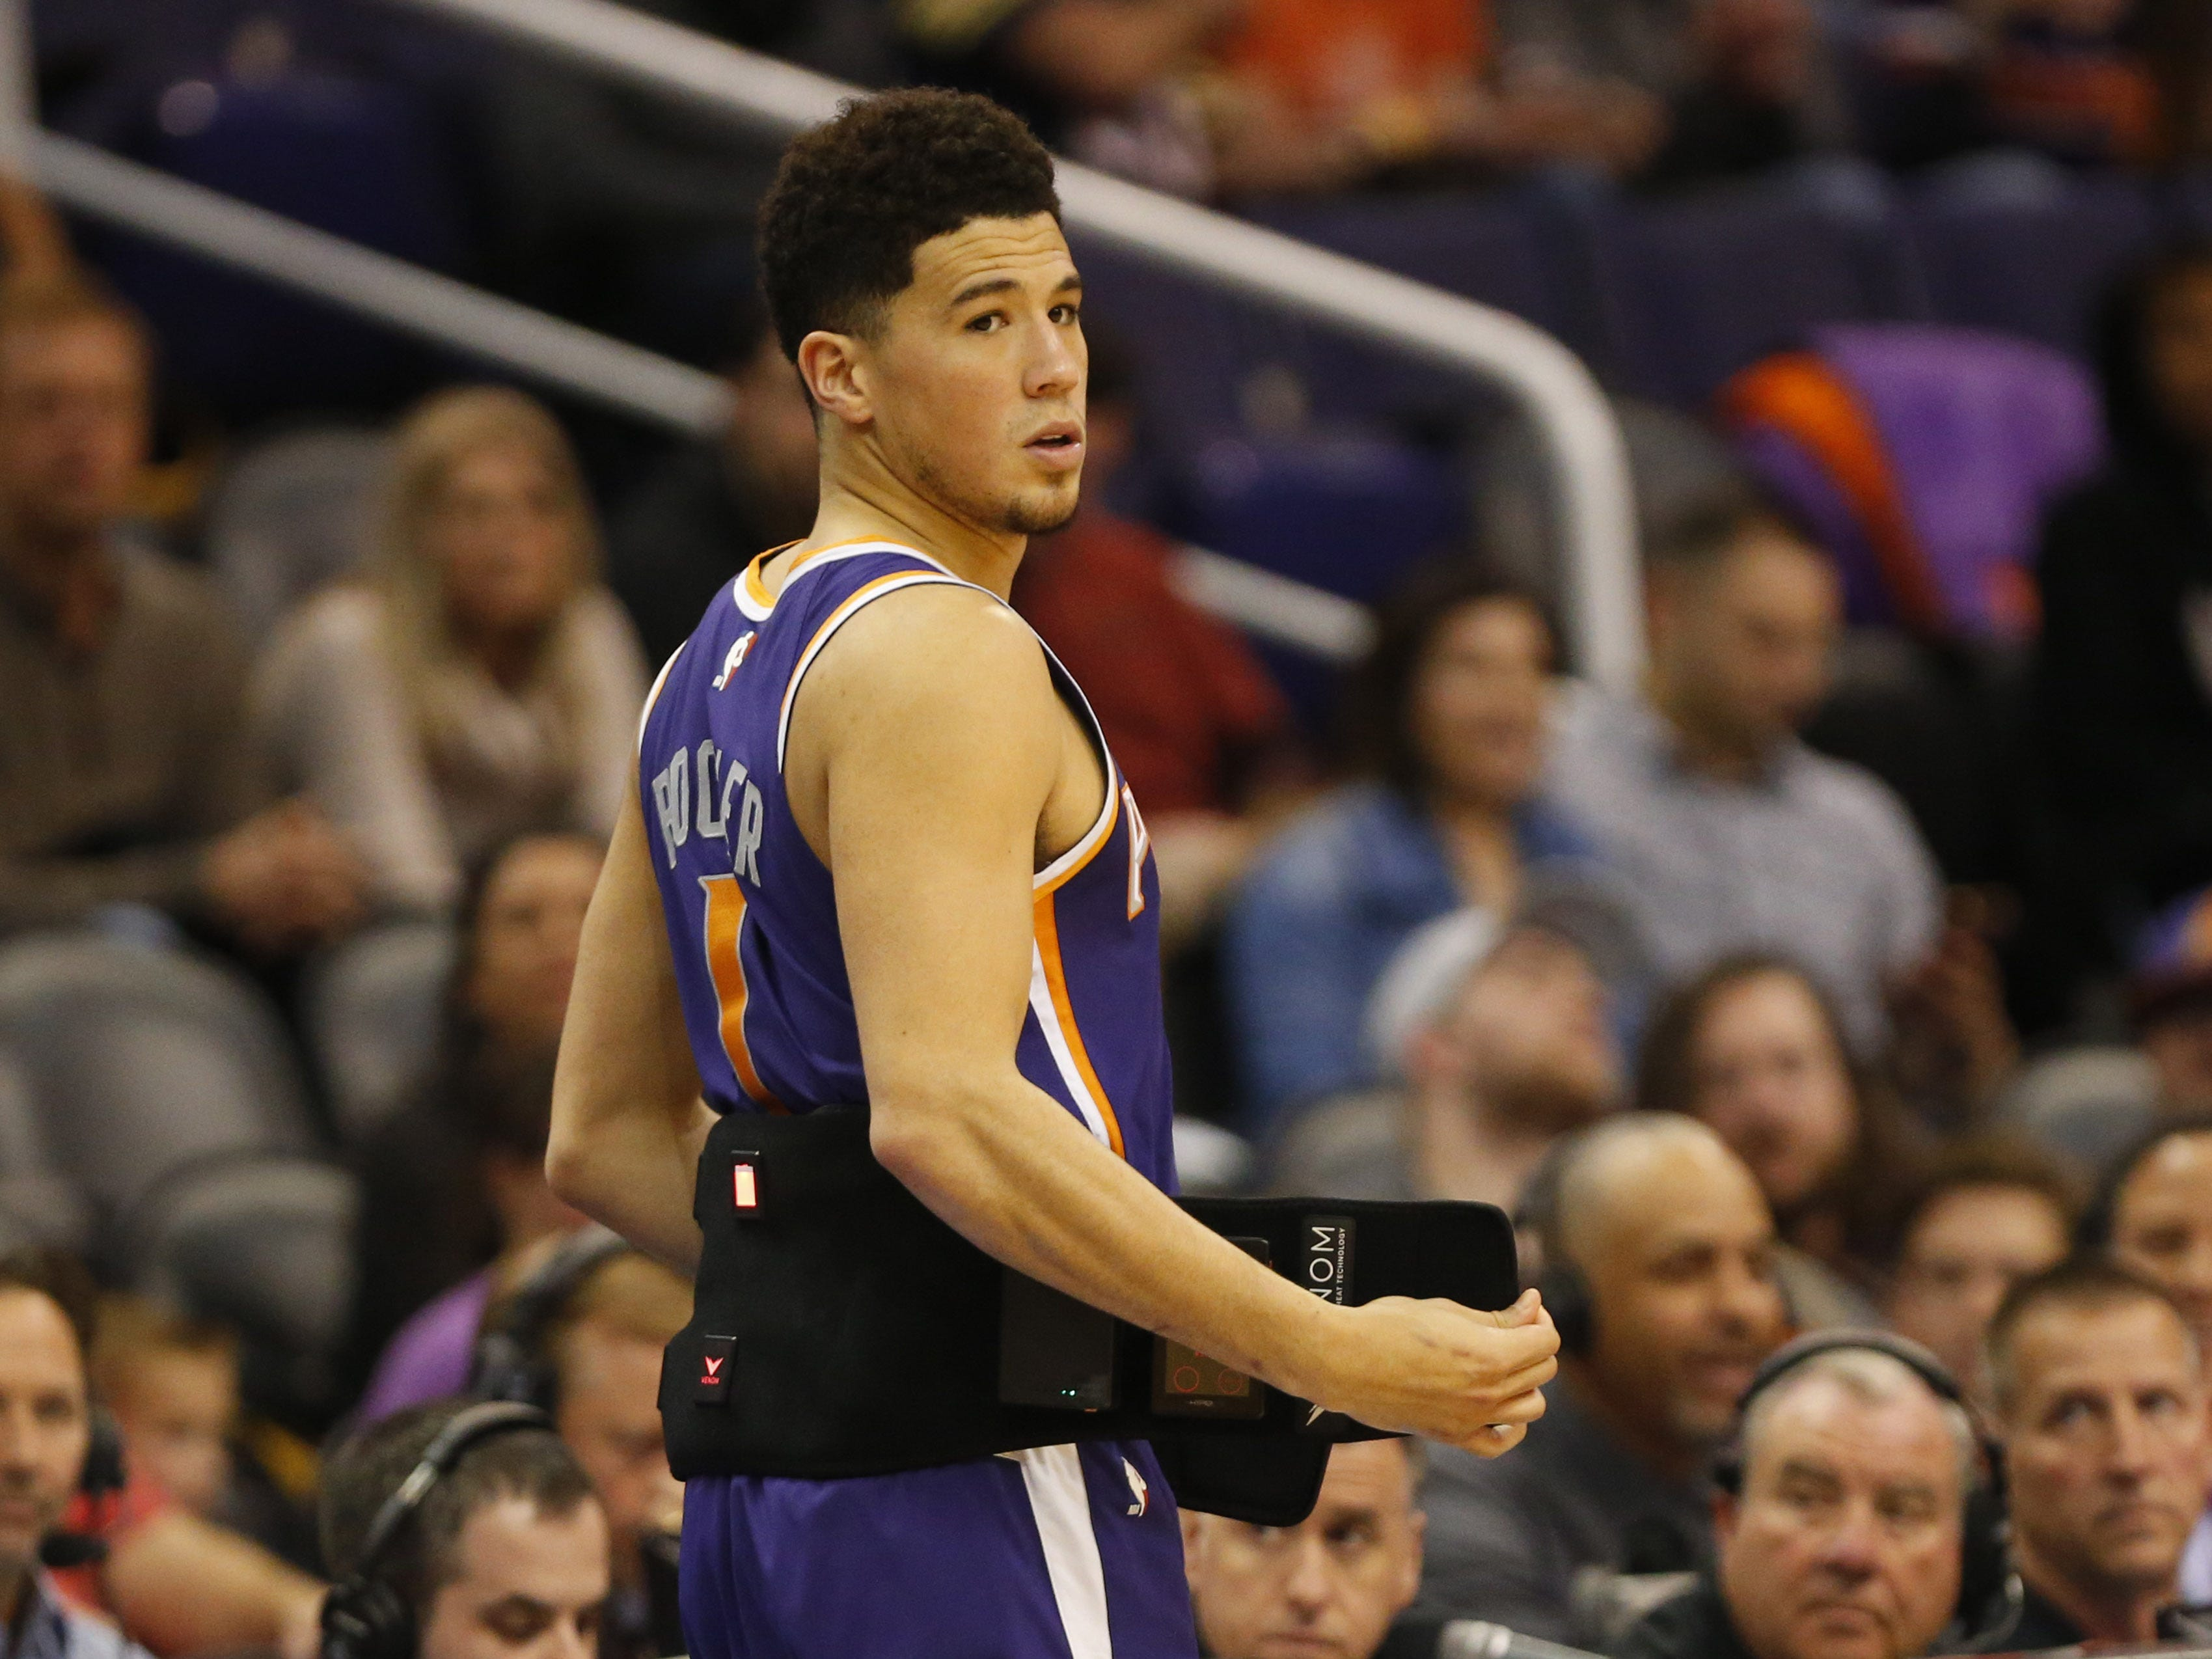 Phoenix Suns guard Devin Booker (1) removes a portable heat and vibration back device before coming in during the second quarter against the Charlotte Hornets in Phoenix January 6, 2019. Booker did not return for the second half due to back spasms.